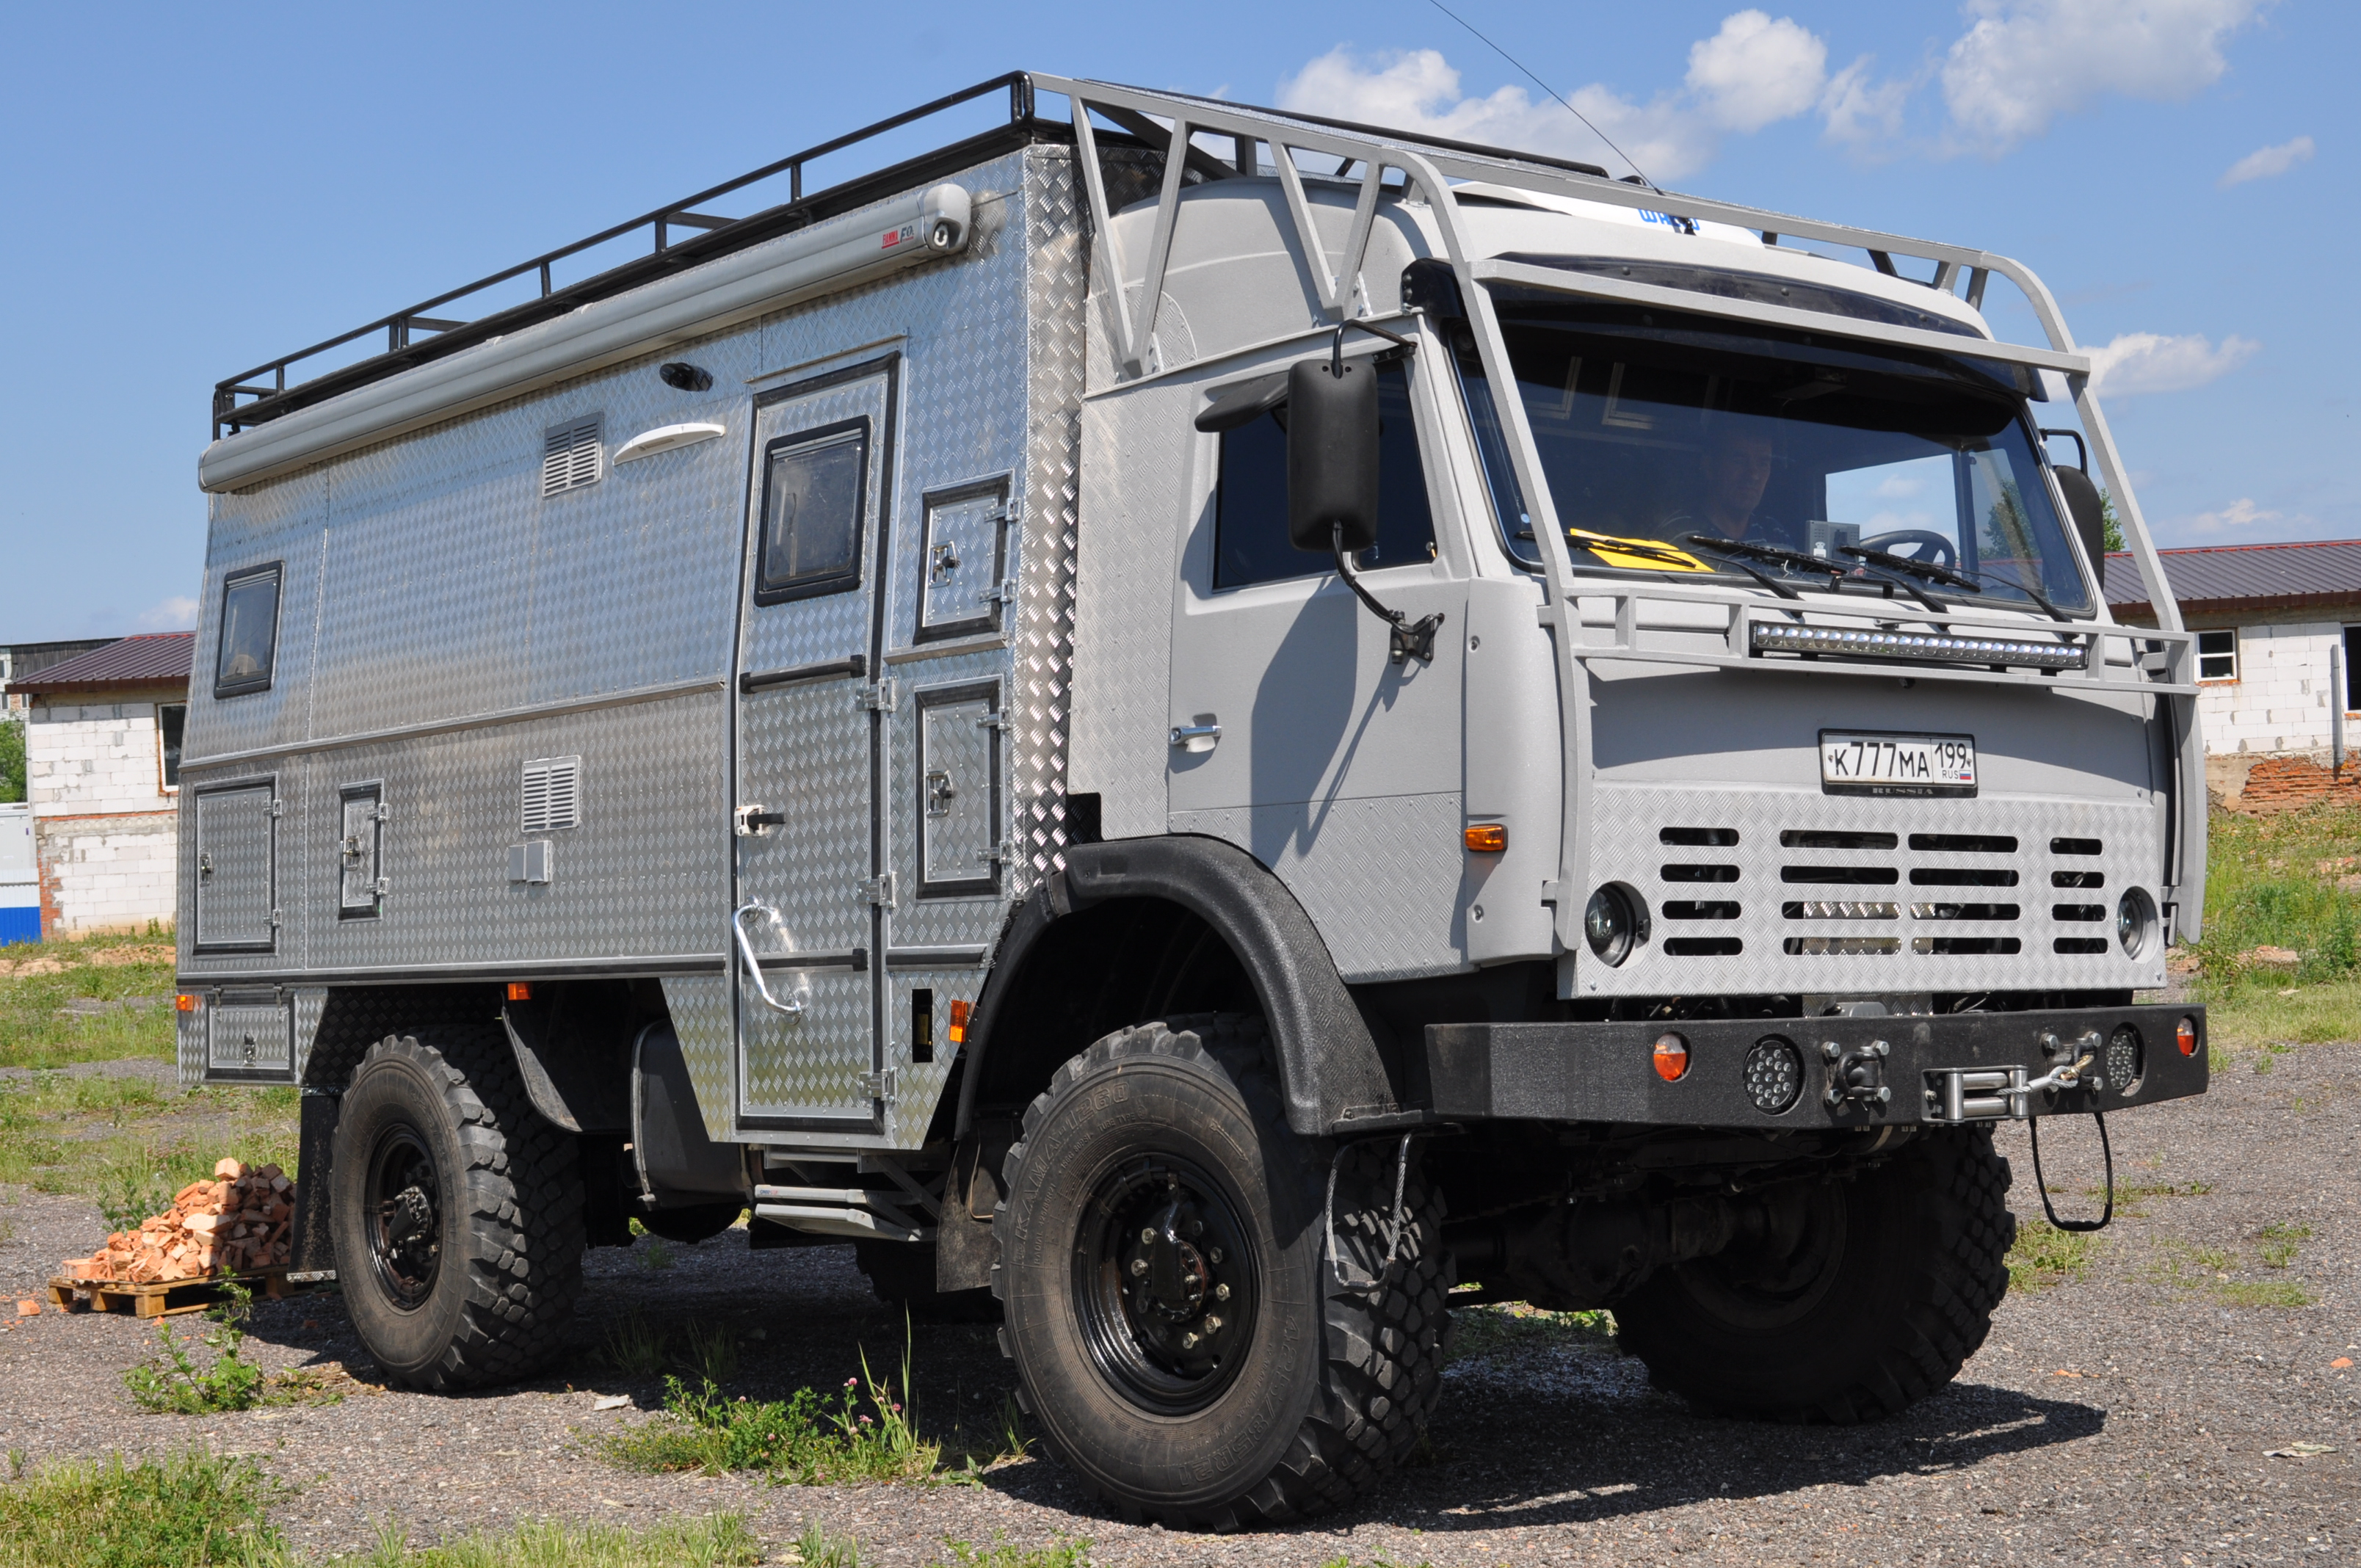 1000 images about expedition vehicules overlanding on pinterest. Black Bedroom Furniture Sets. Home Design Ideas